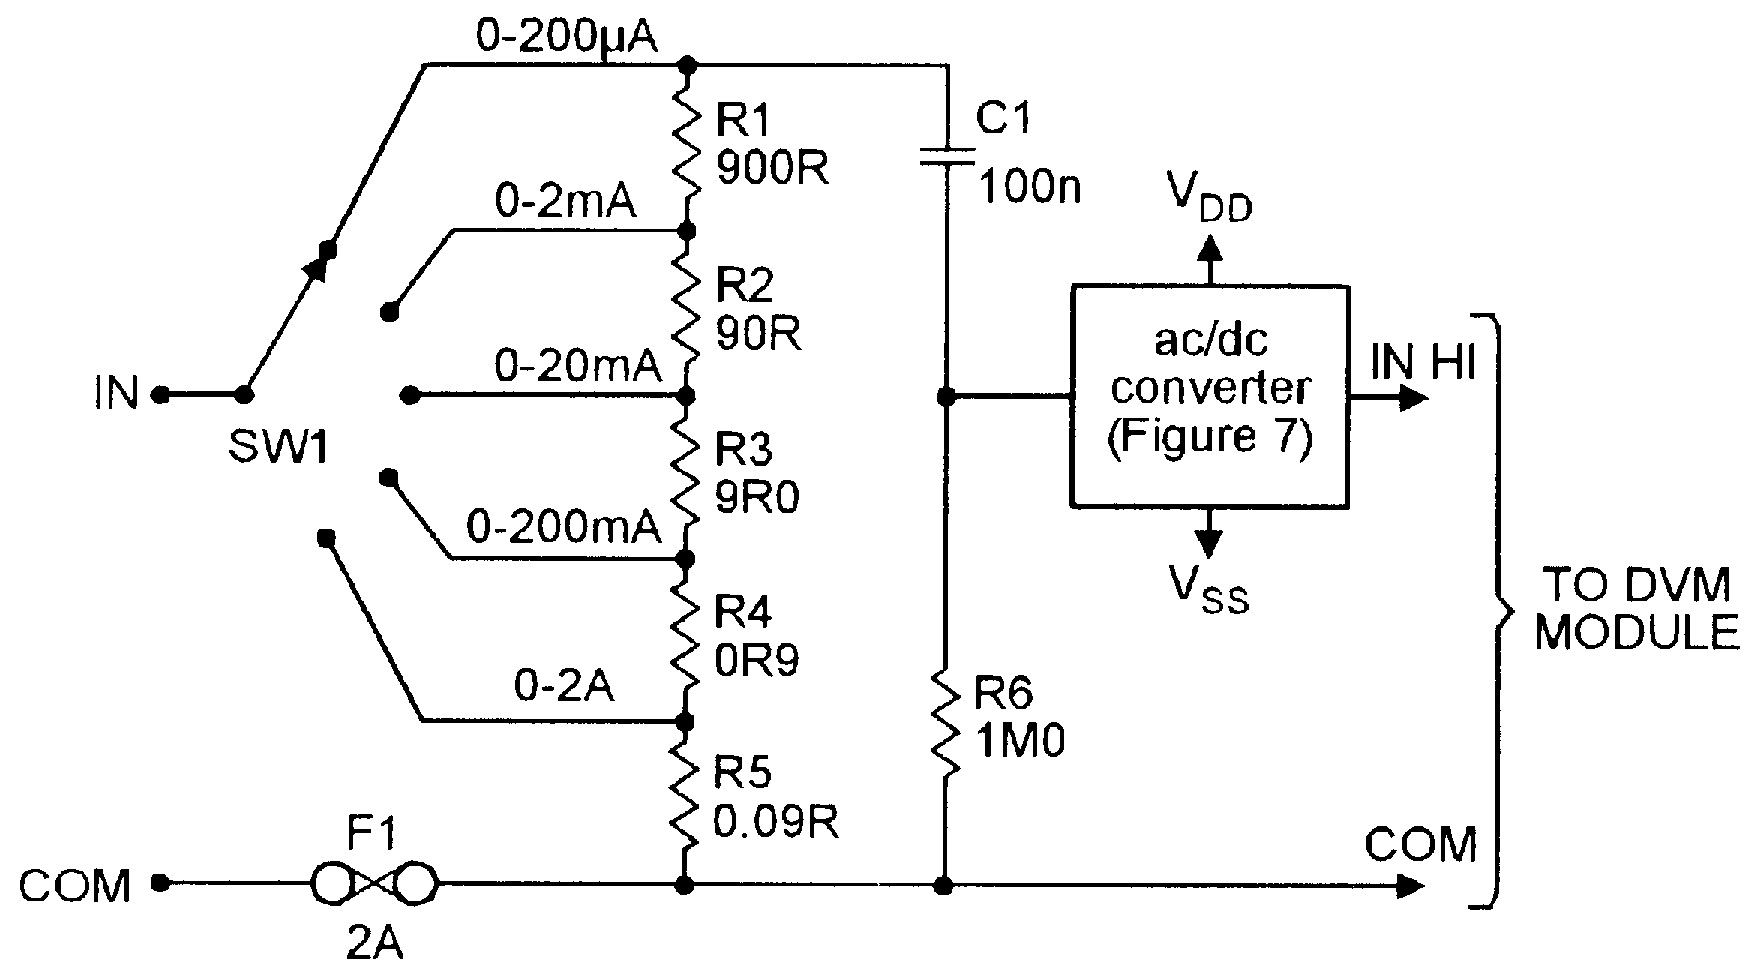 Op Amp Cookbook Part 4 Nuts Volts Magazine Related Image With Digital Voltmeter Circuit Five Range Ac Current Meter Converter For Use Dvm Modules